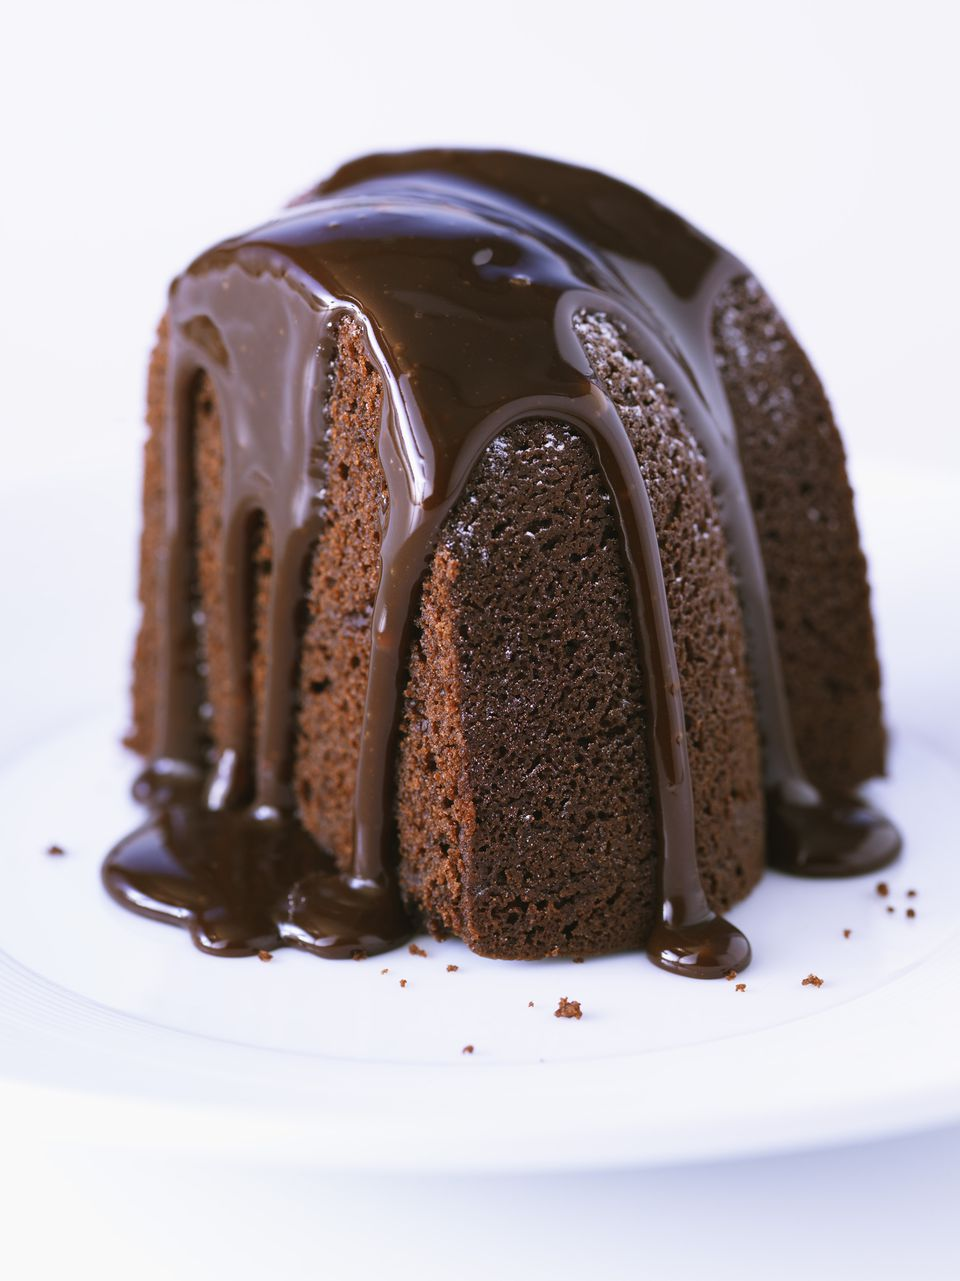 Chocolate bundt cake with chocolate glaze